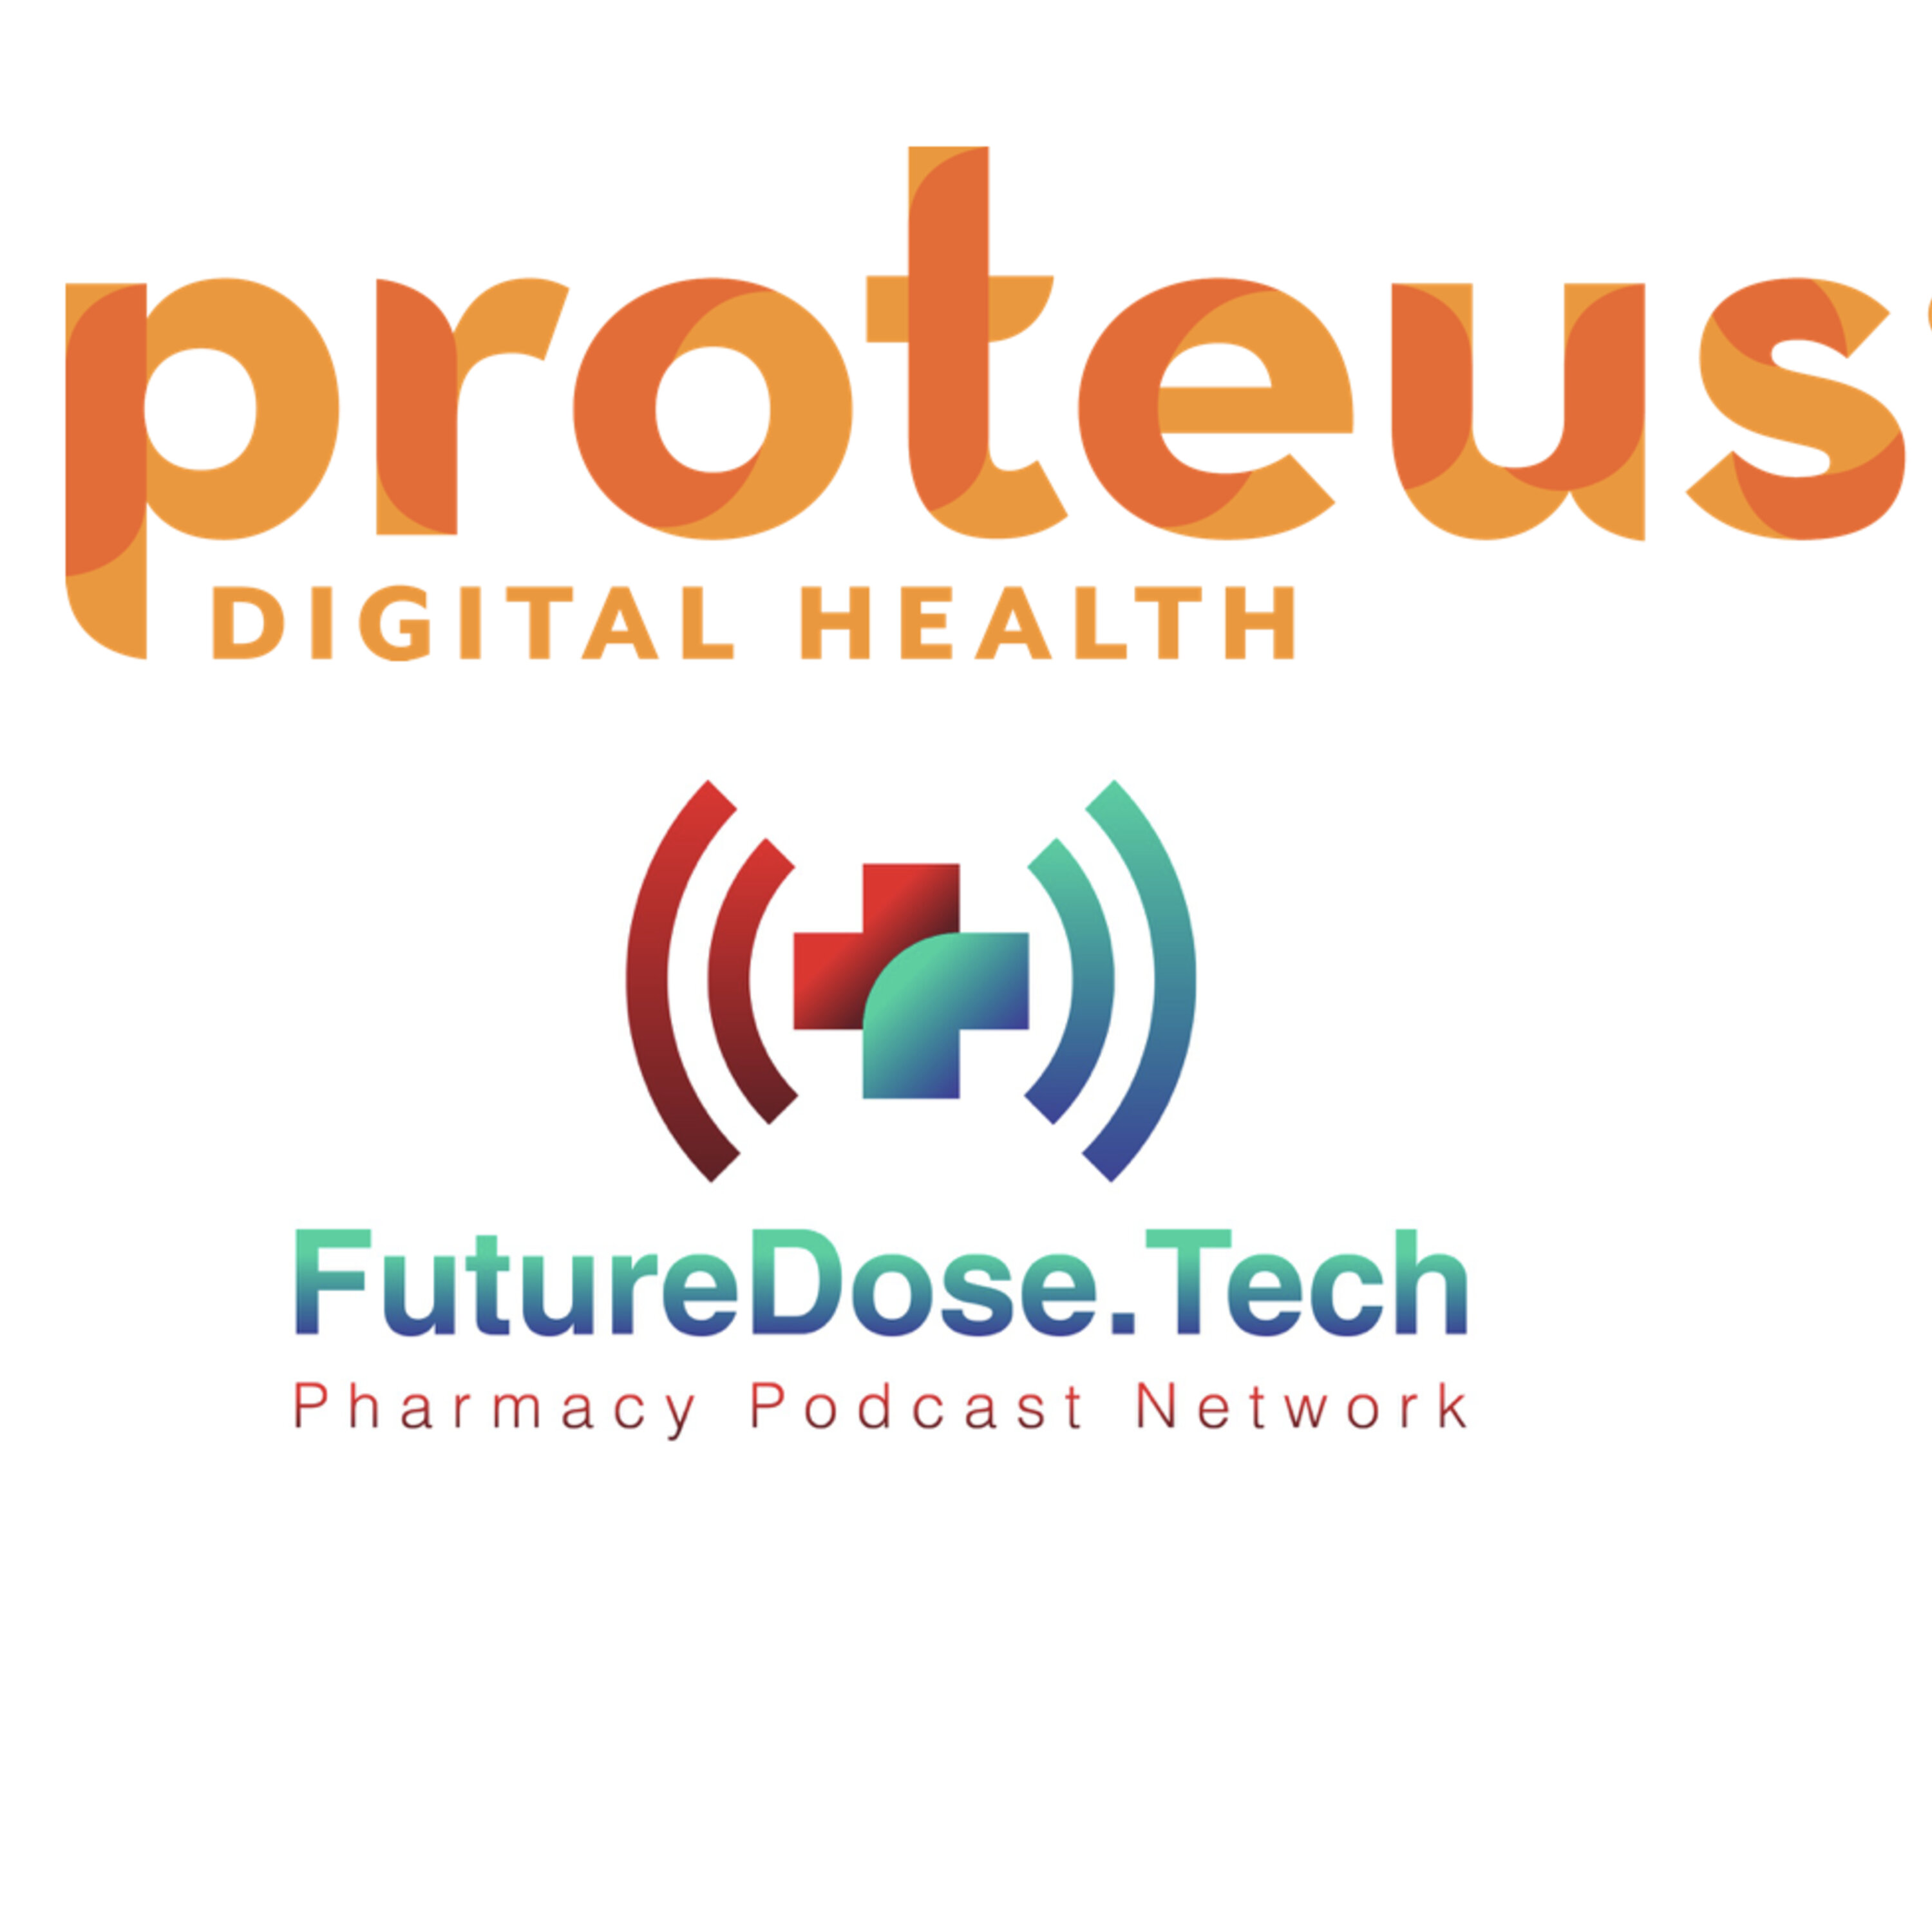 Why do Digital Health Companies focused on Medication Adherence struggle? - PPN Episode 901